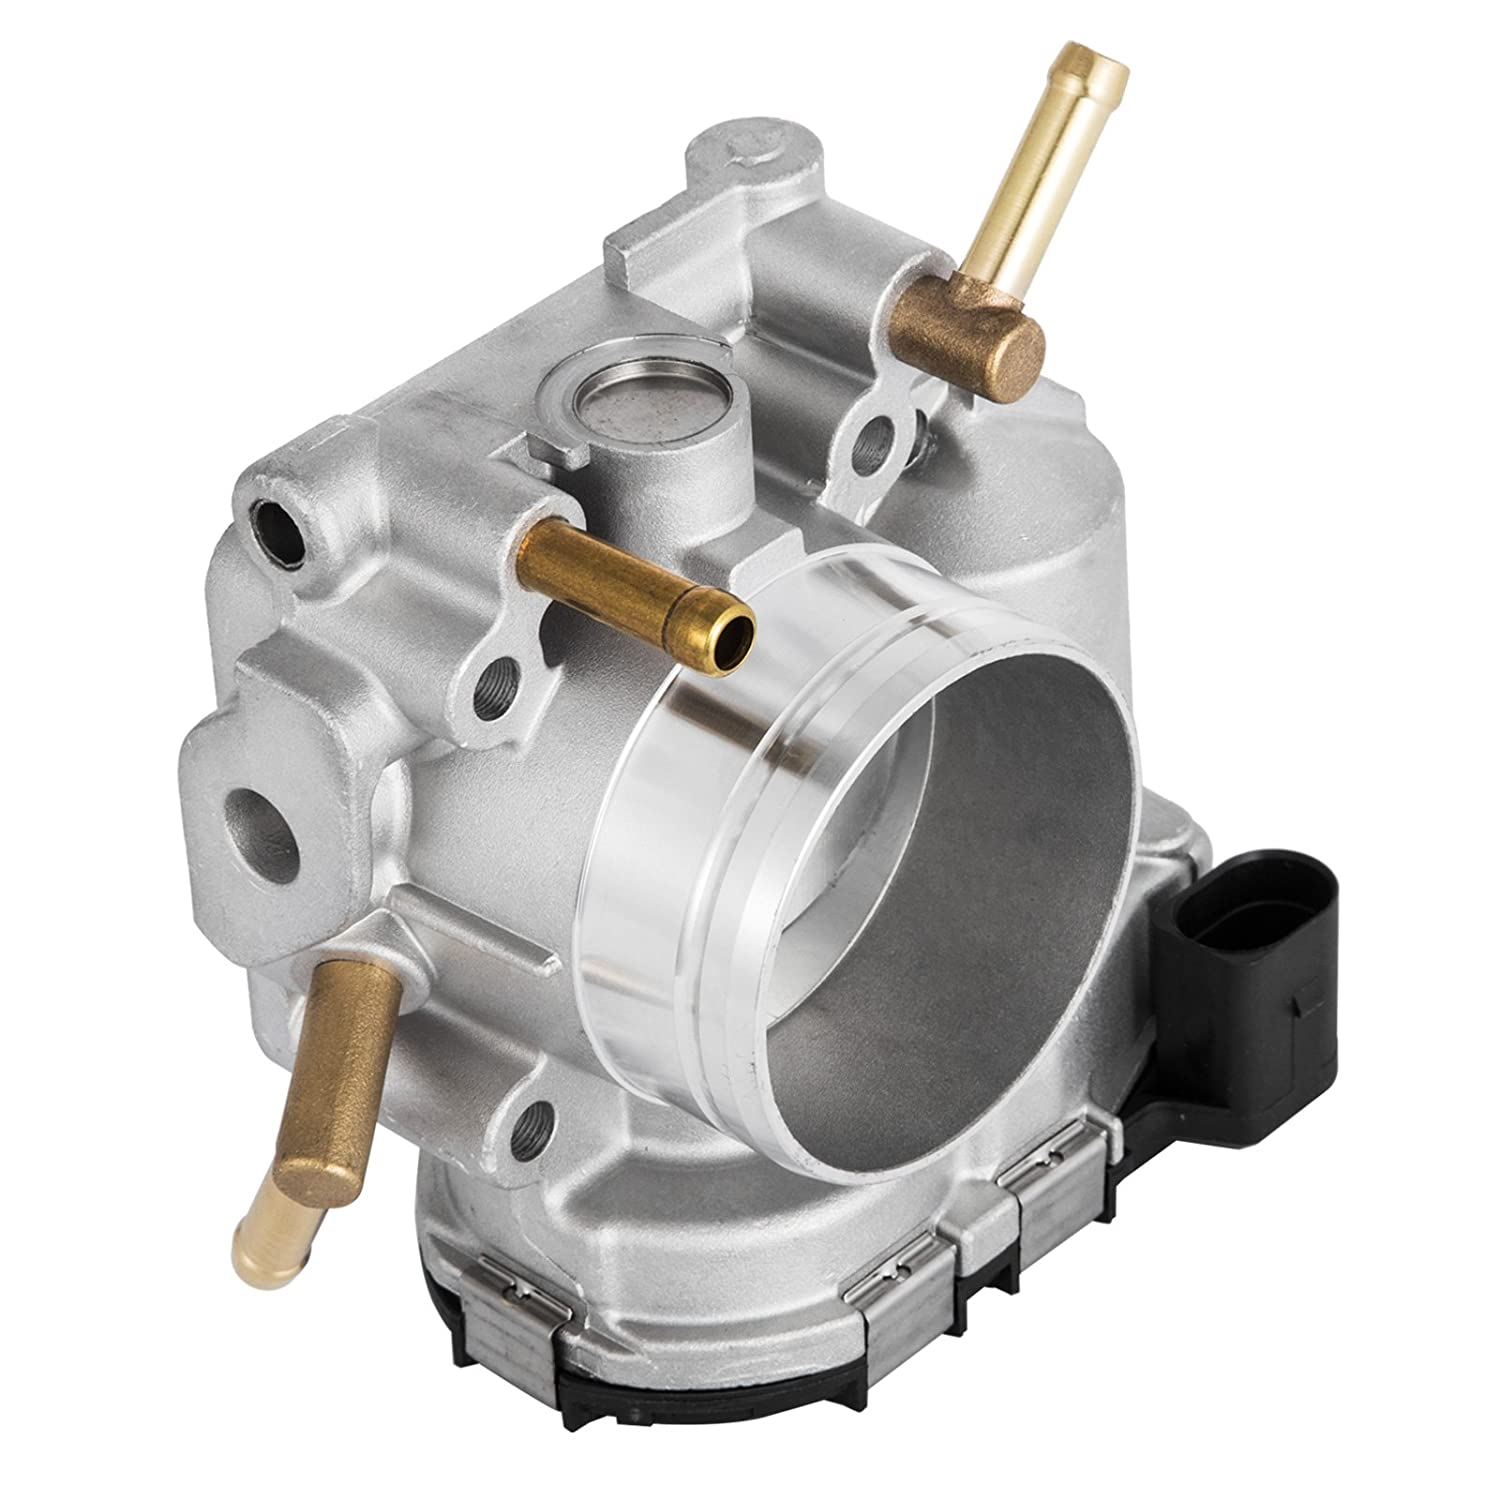 Bestauto Throttle Body Multiple Choices For Throttle Body Assembly (Suzuki Forenza)